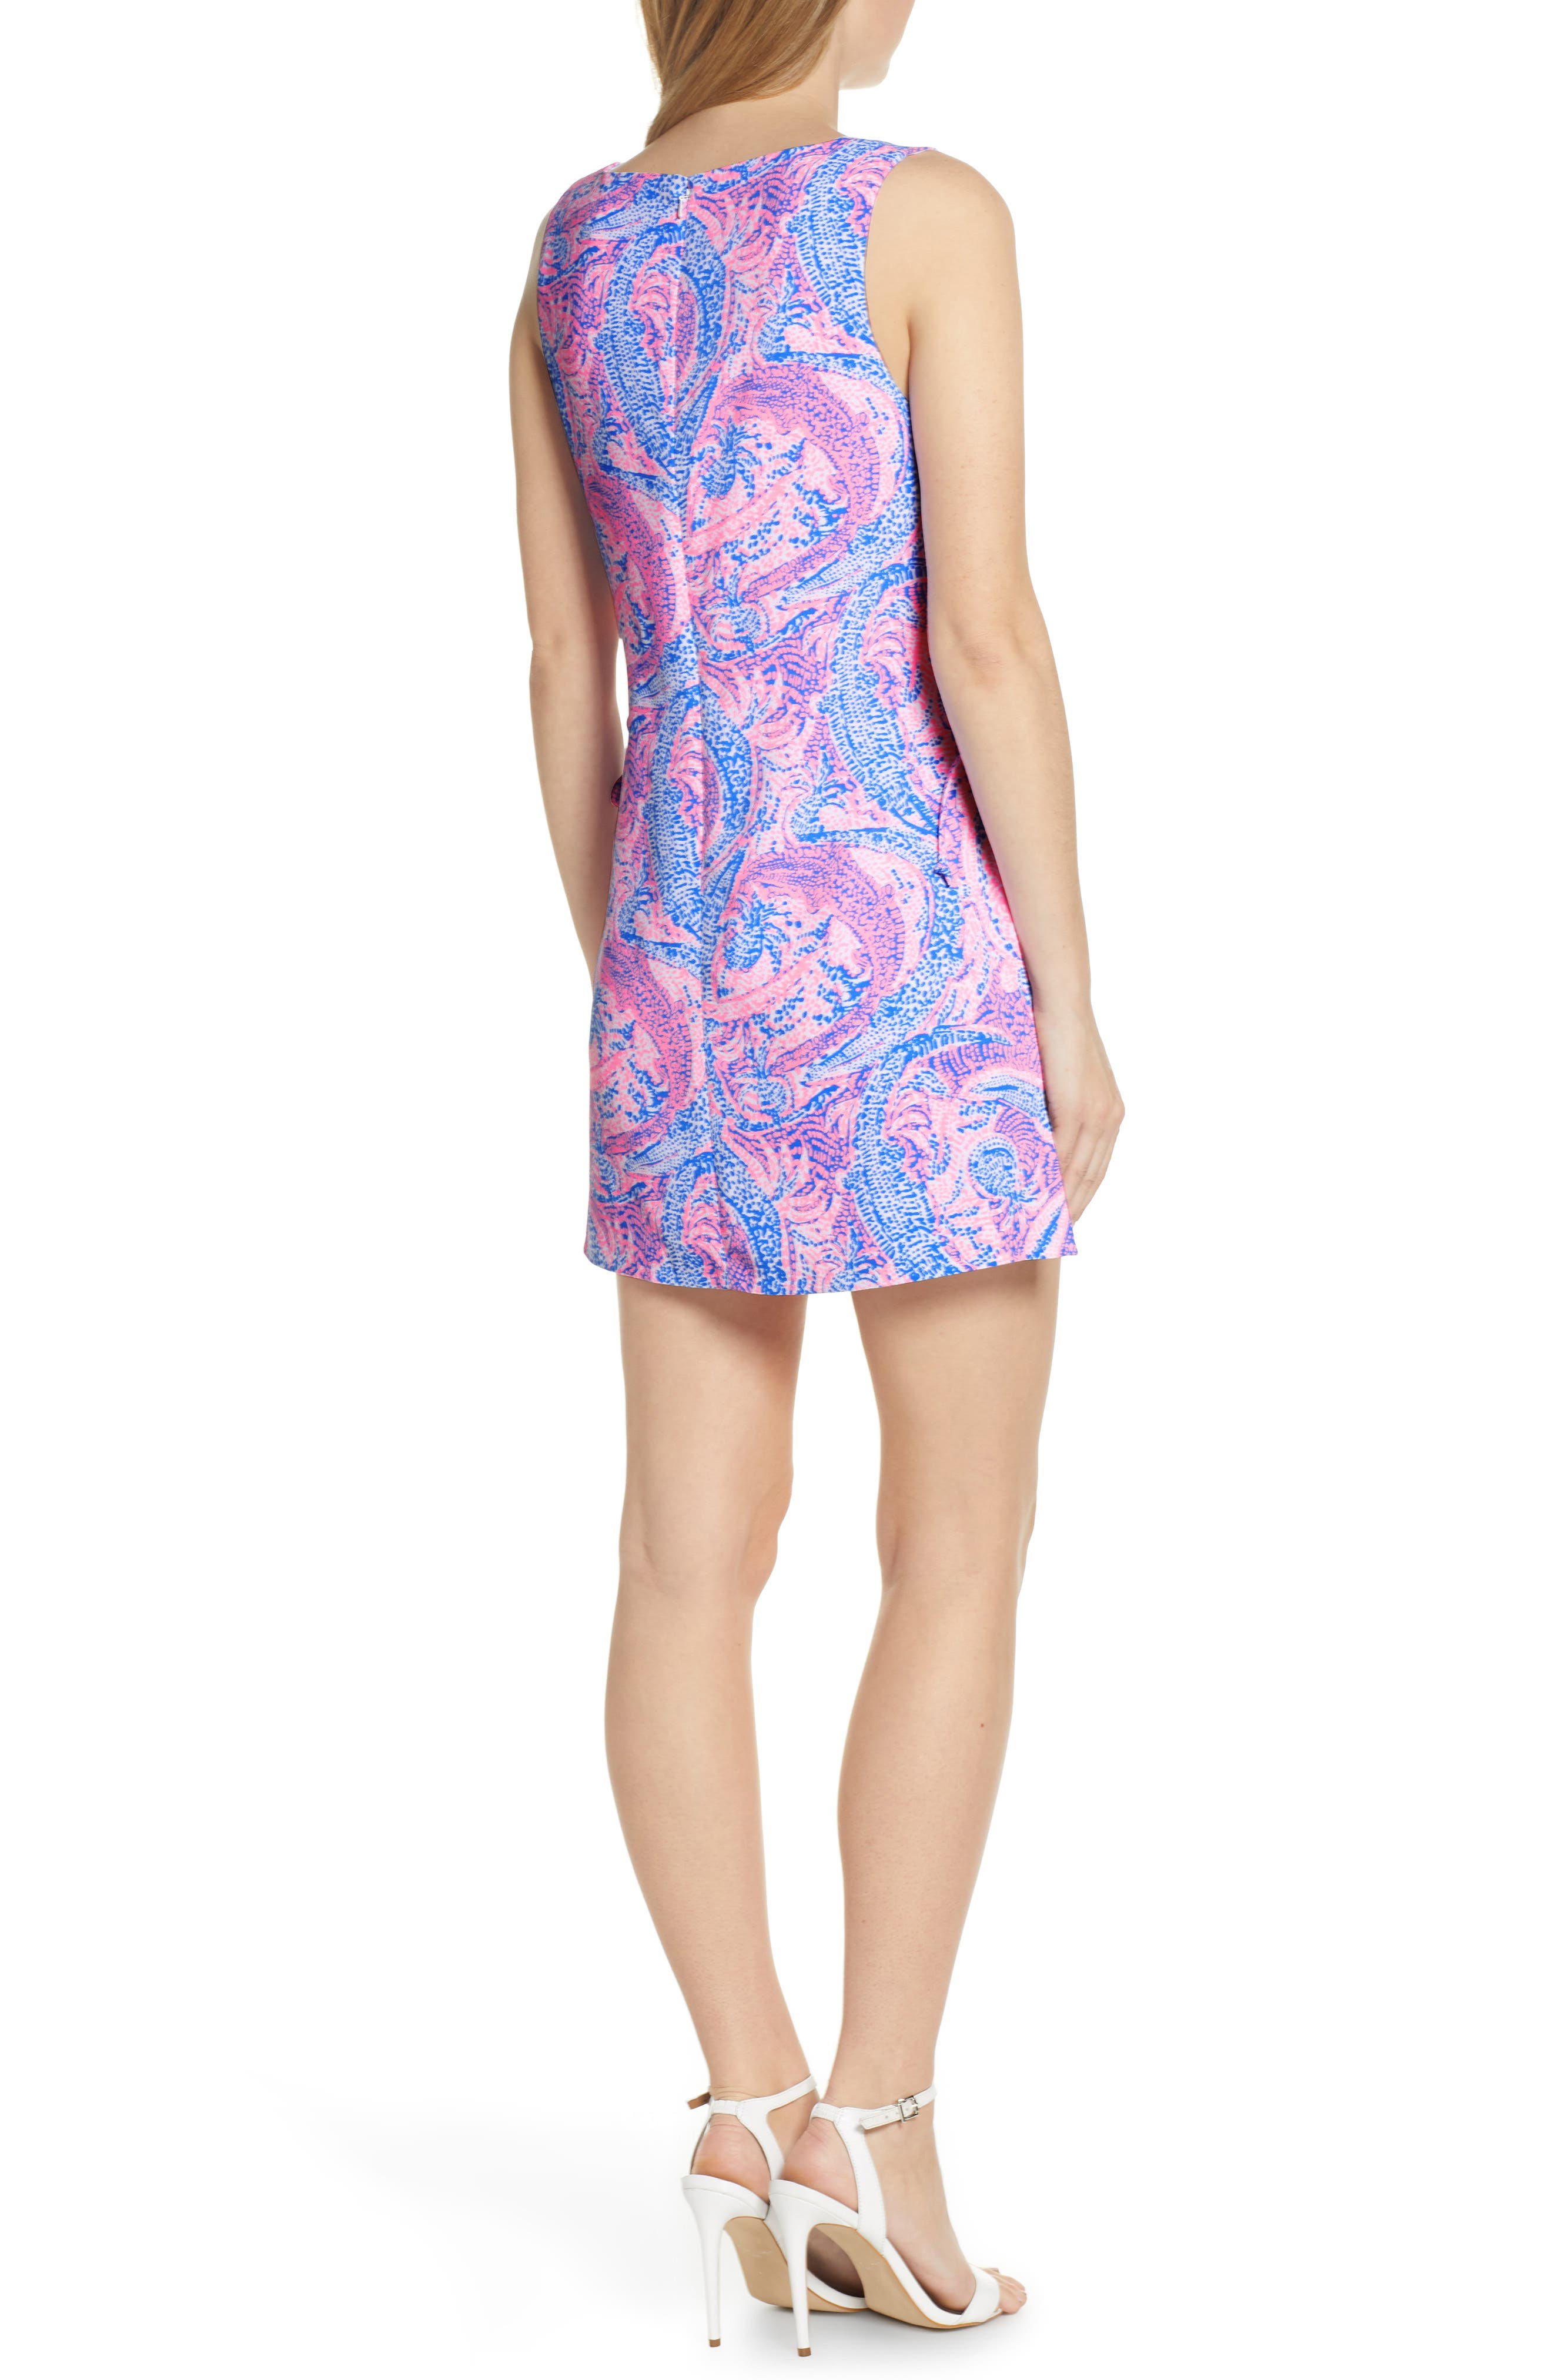 LILLY PULITZER<SUP>®</SUP>, Donna Romper Dress, Alternate thumbnail 2, color, COASTAL BLUE MAYBE GATO